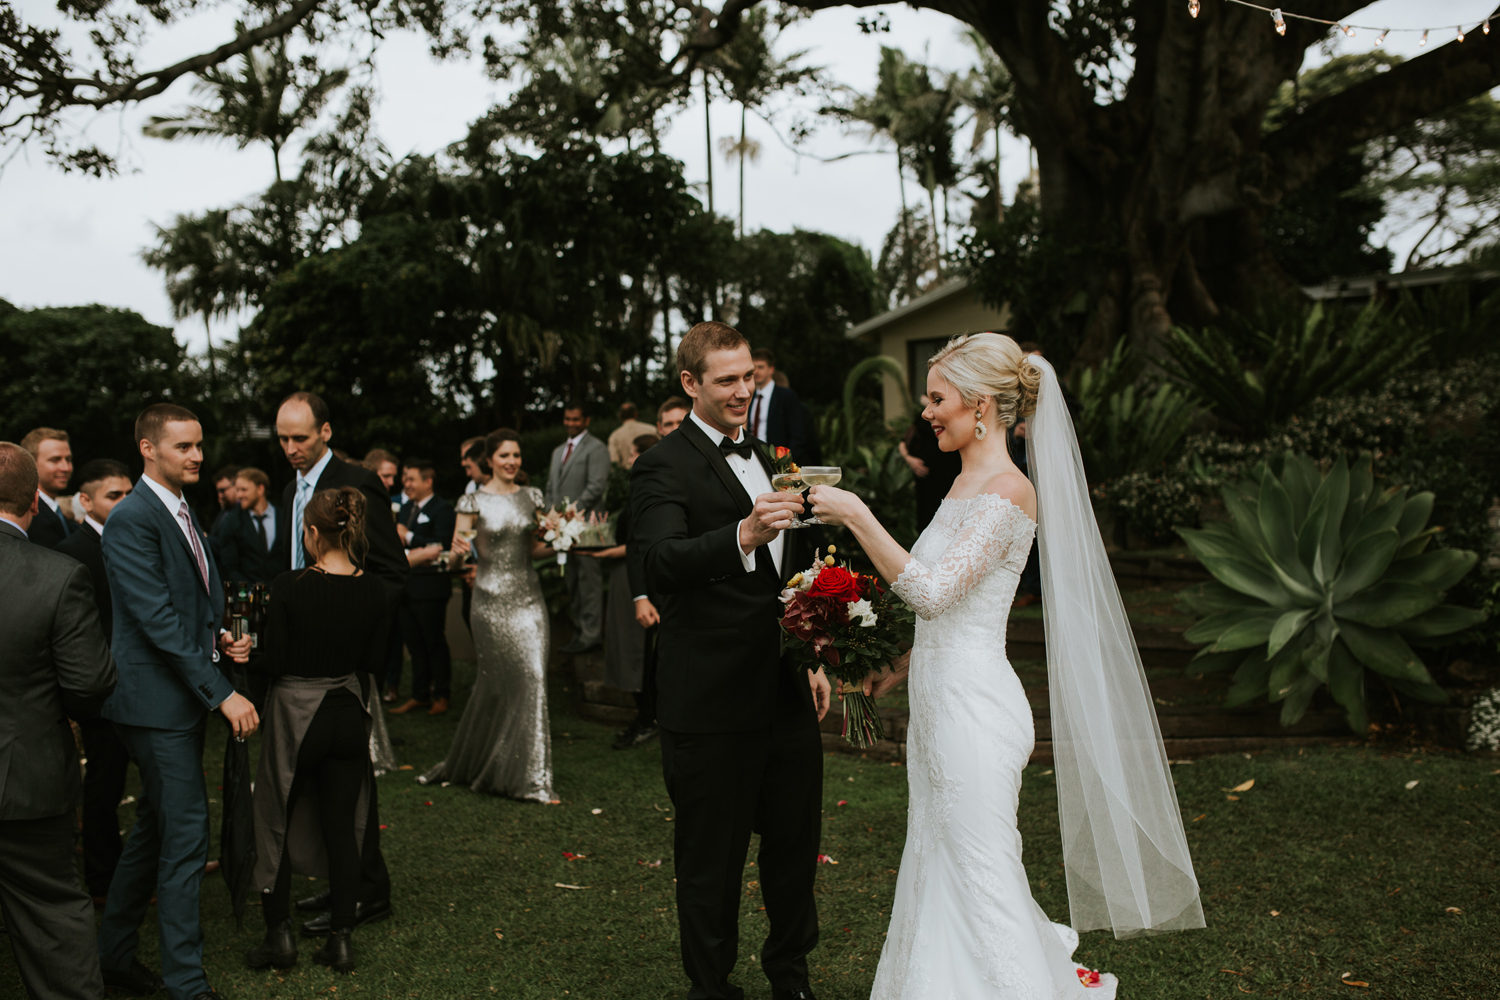 509-byron_bay_wedding_photographer.jpg